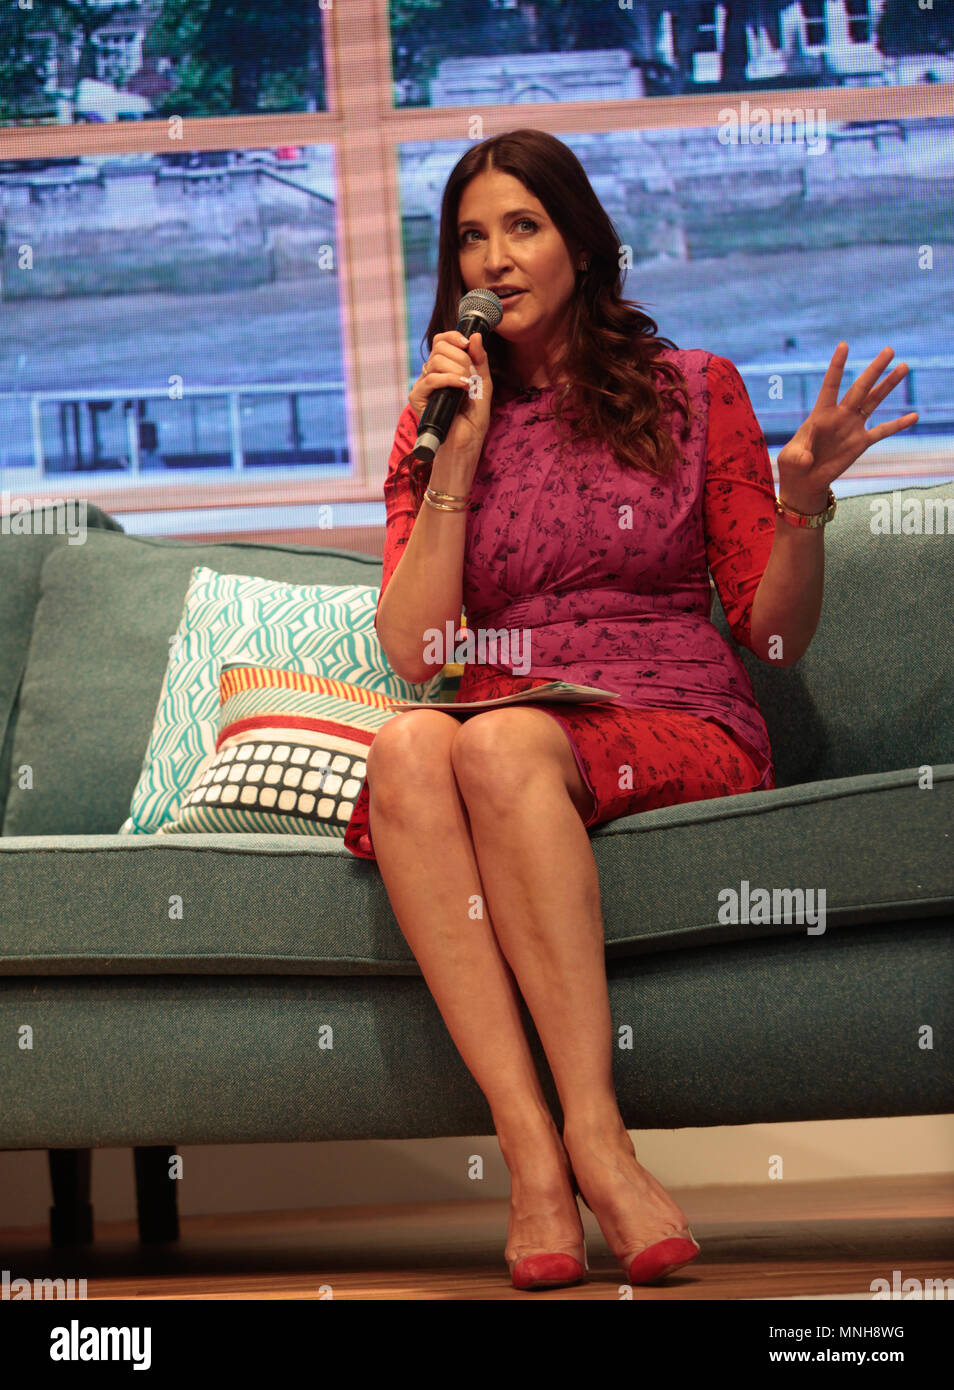 Birmingham UK 17 May 2018 This Morning live show in the NEC ,hLisa Snowdon's,Jtalking about fashion in the stage Credit: Paul Quezada-Neiman/Alamy Live News - Stock Image